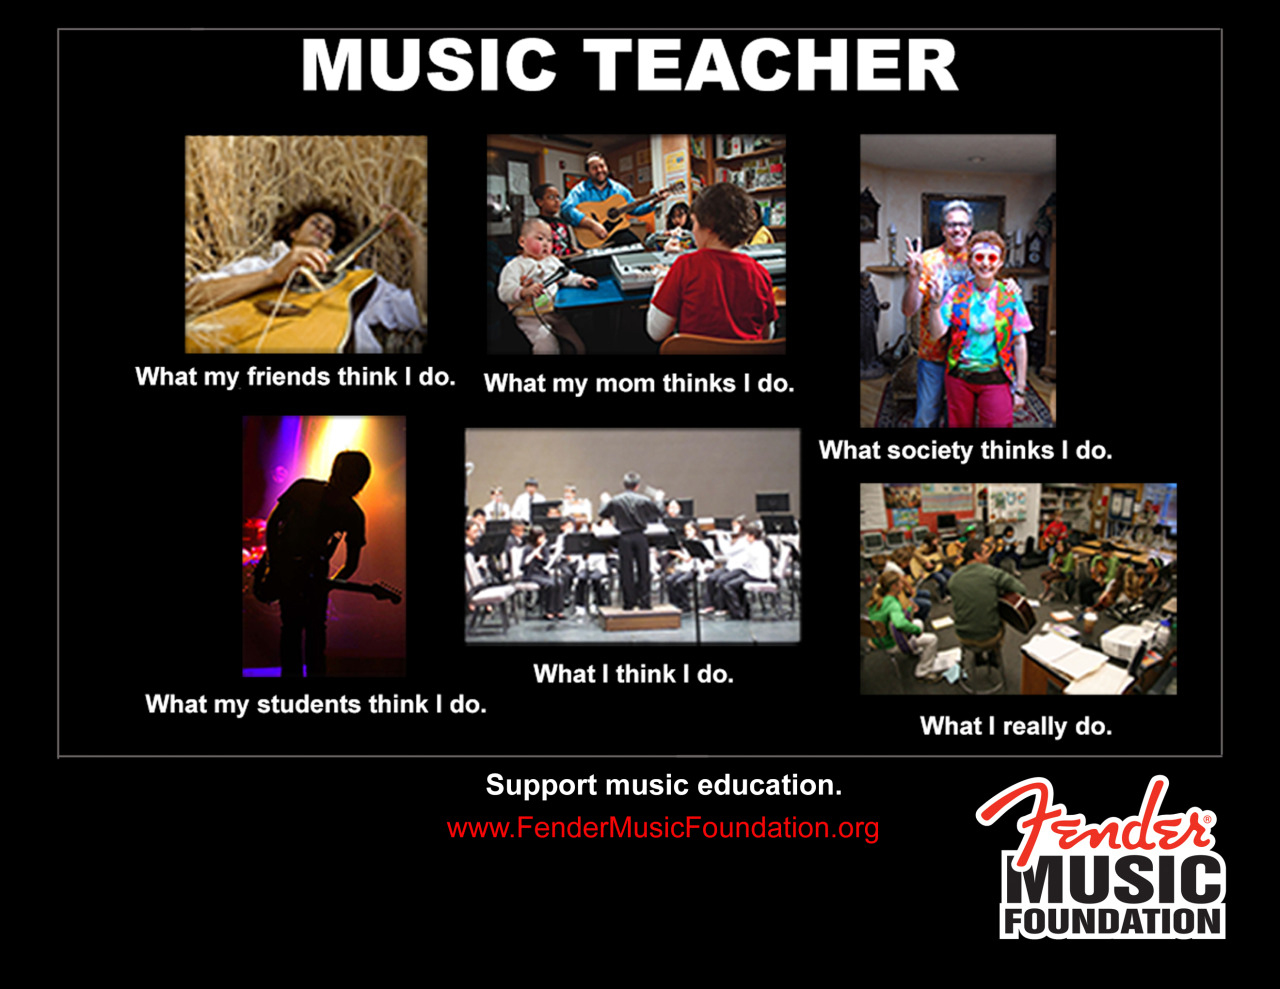 givemusiclife:  Share this meme if you support music educators!